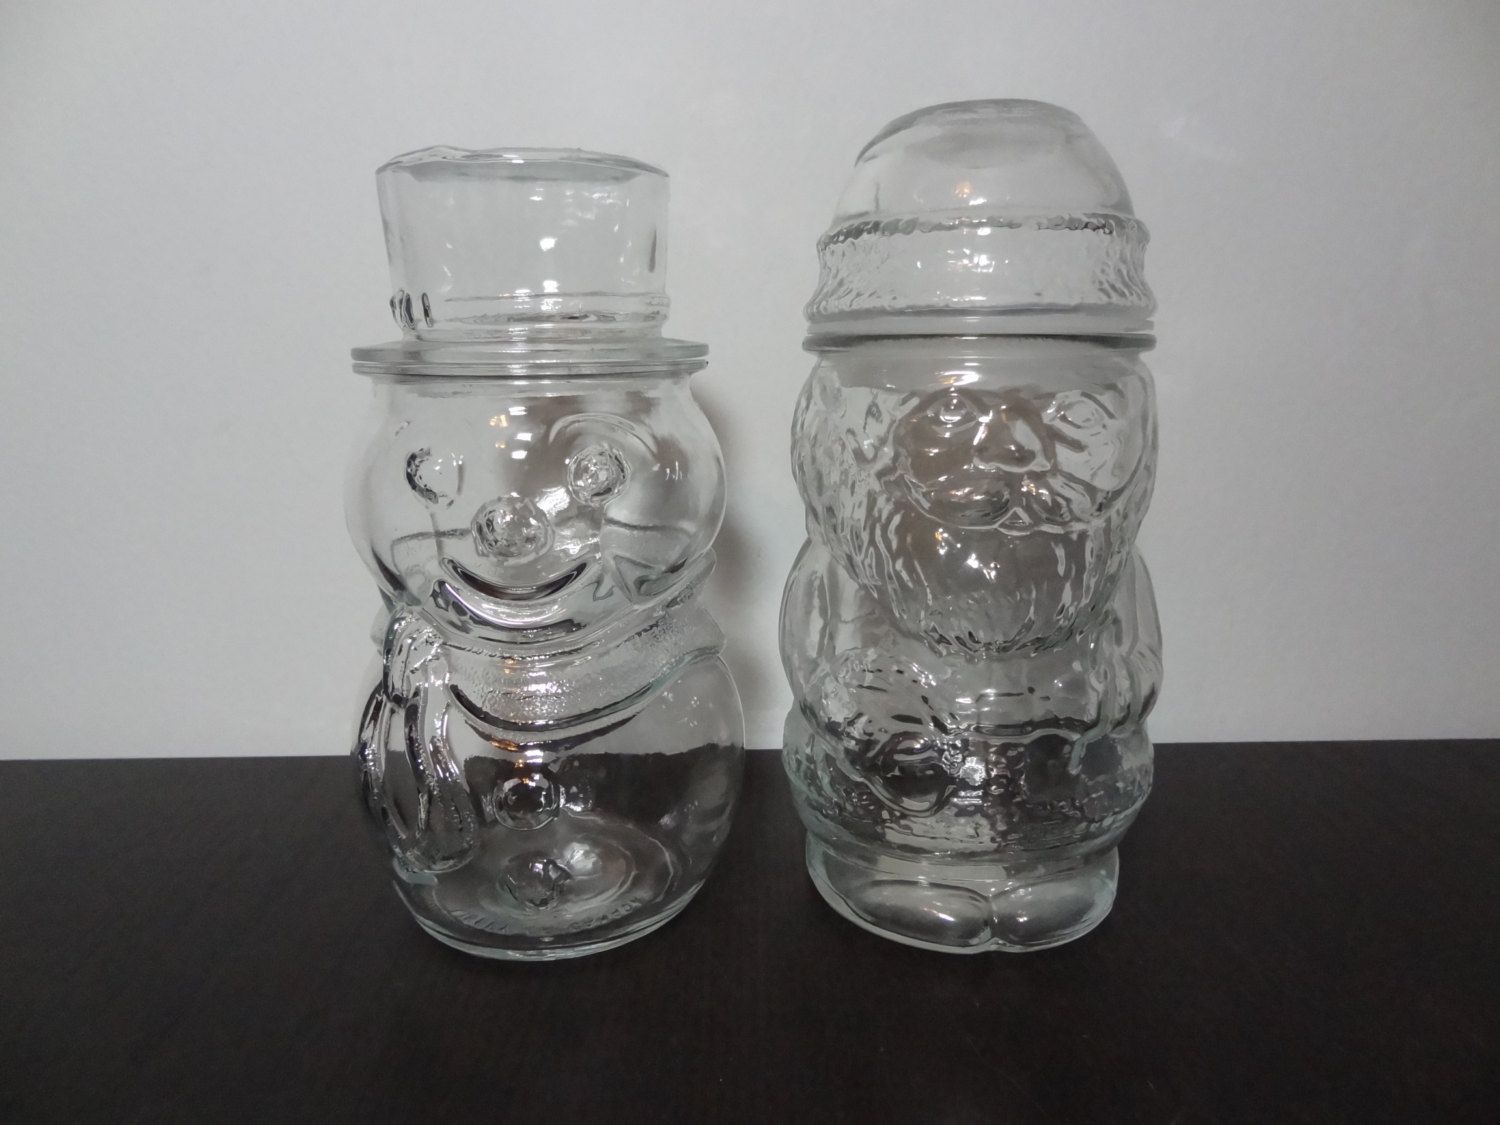 Vintage Libbey Clear Glass Snowman and Santa Clause Jars - Set of 2  - Christmas/Holiday Glass Canisters/Apothecary/Storage Jars by DaysLongGoneSalvage on Etsy